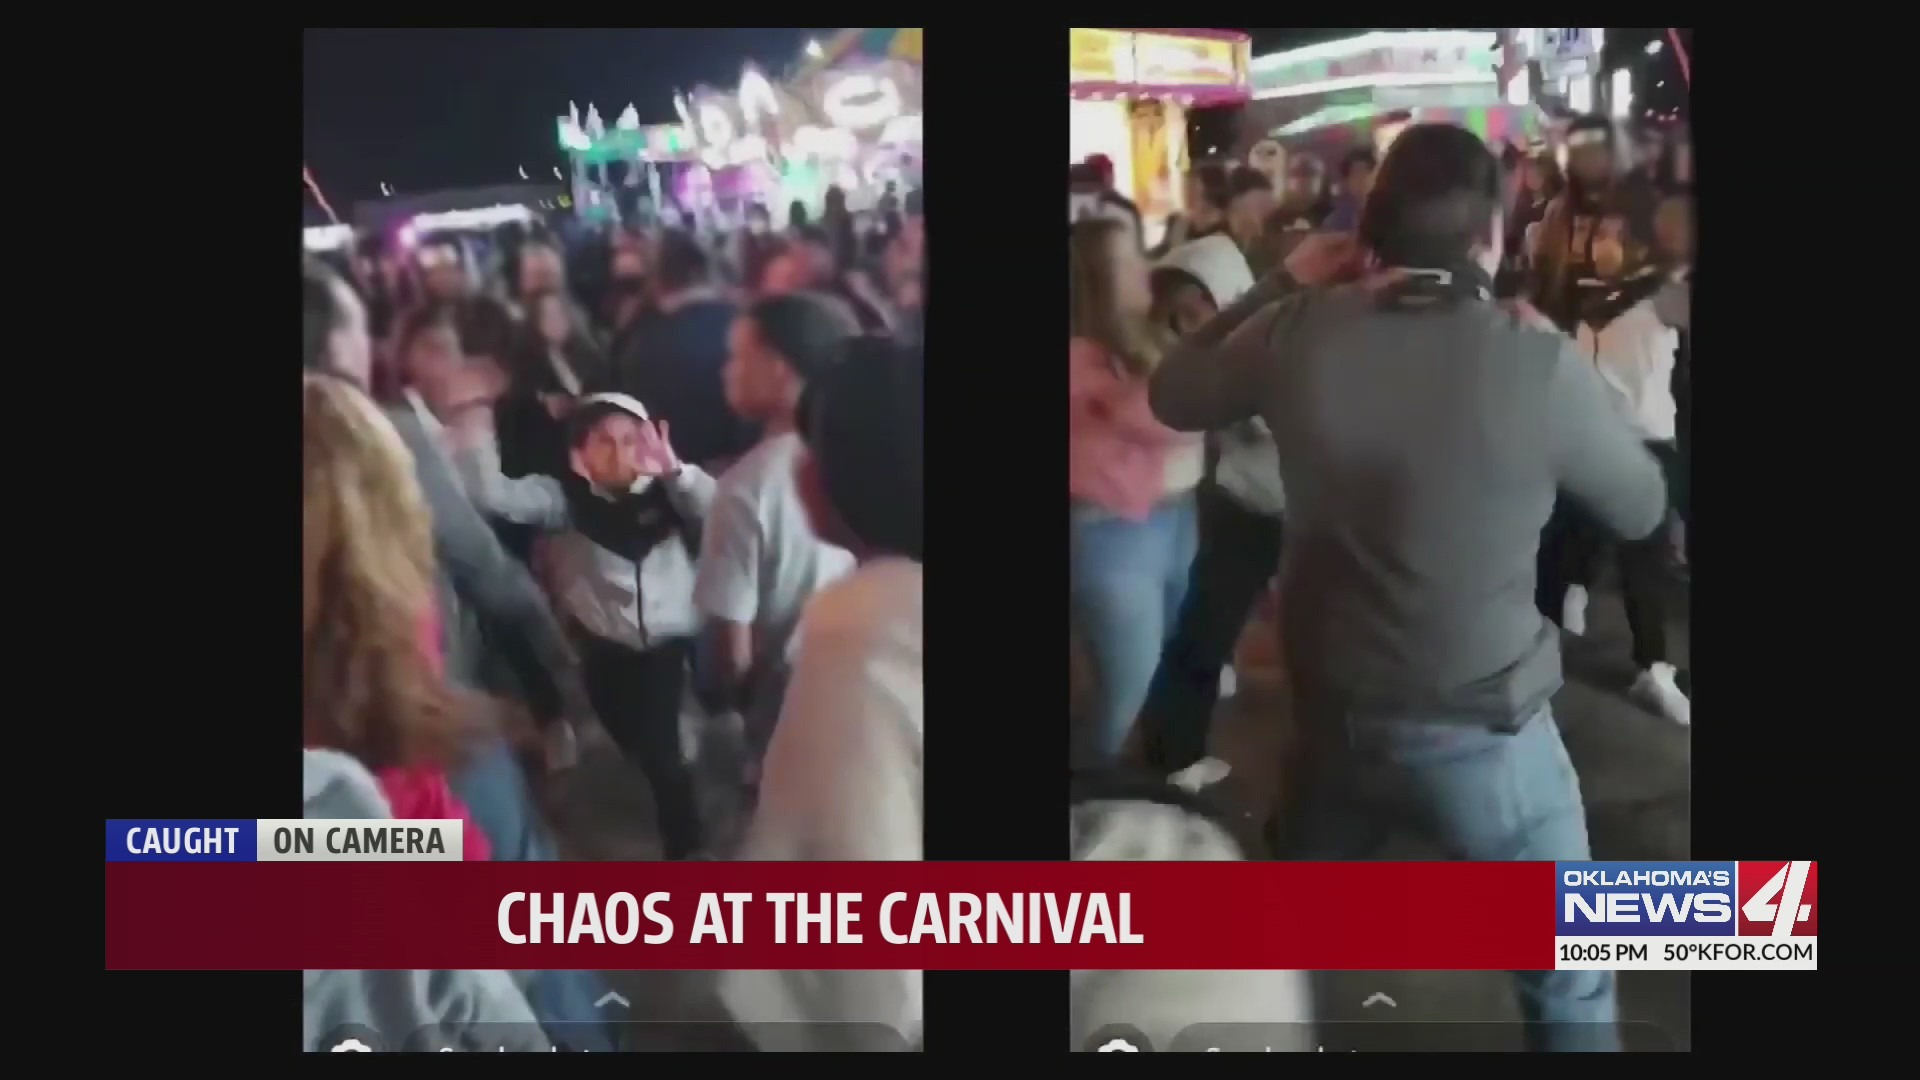 Oklahoma City police searching for carnival-goers involved in altercation in which pepper spray was used